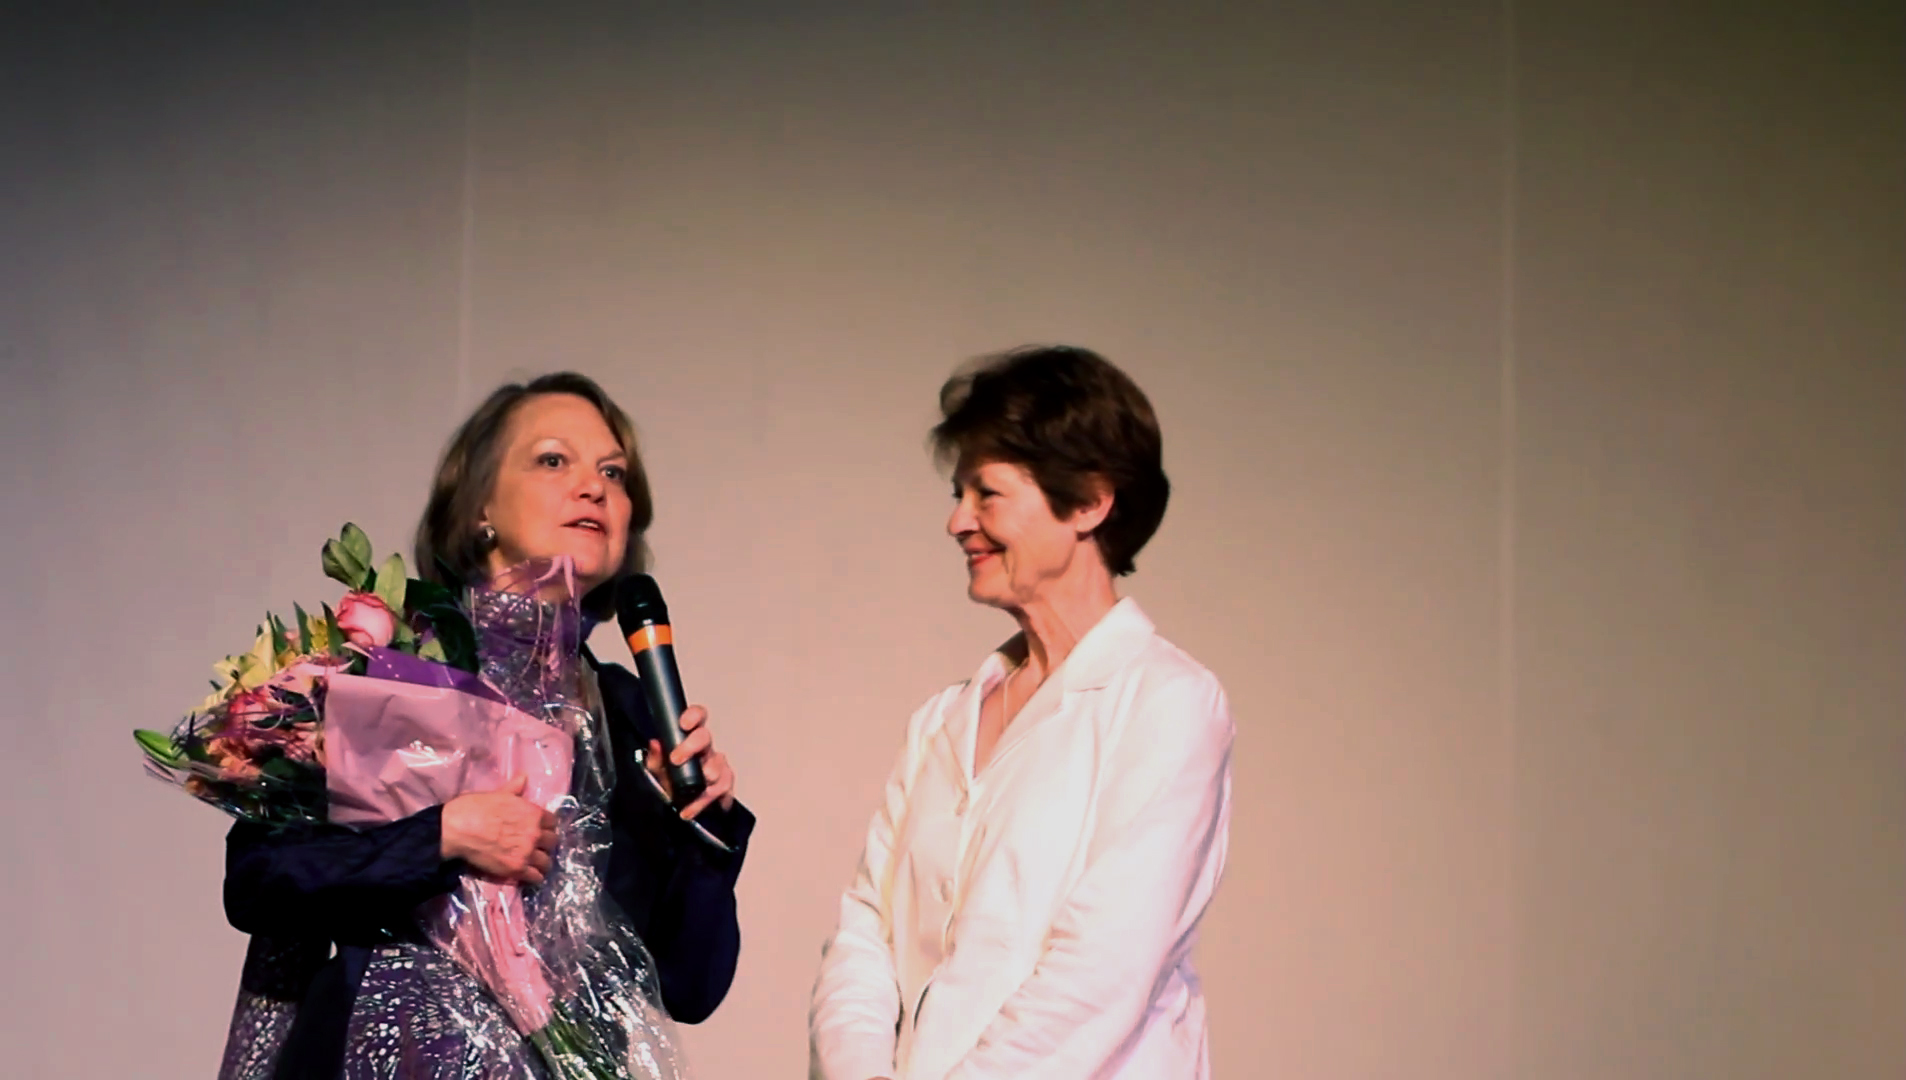 Filmmaker Alexandra Branyon with Laquita Thomson